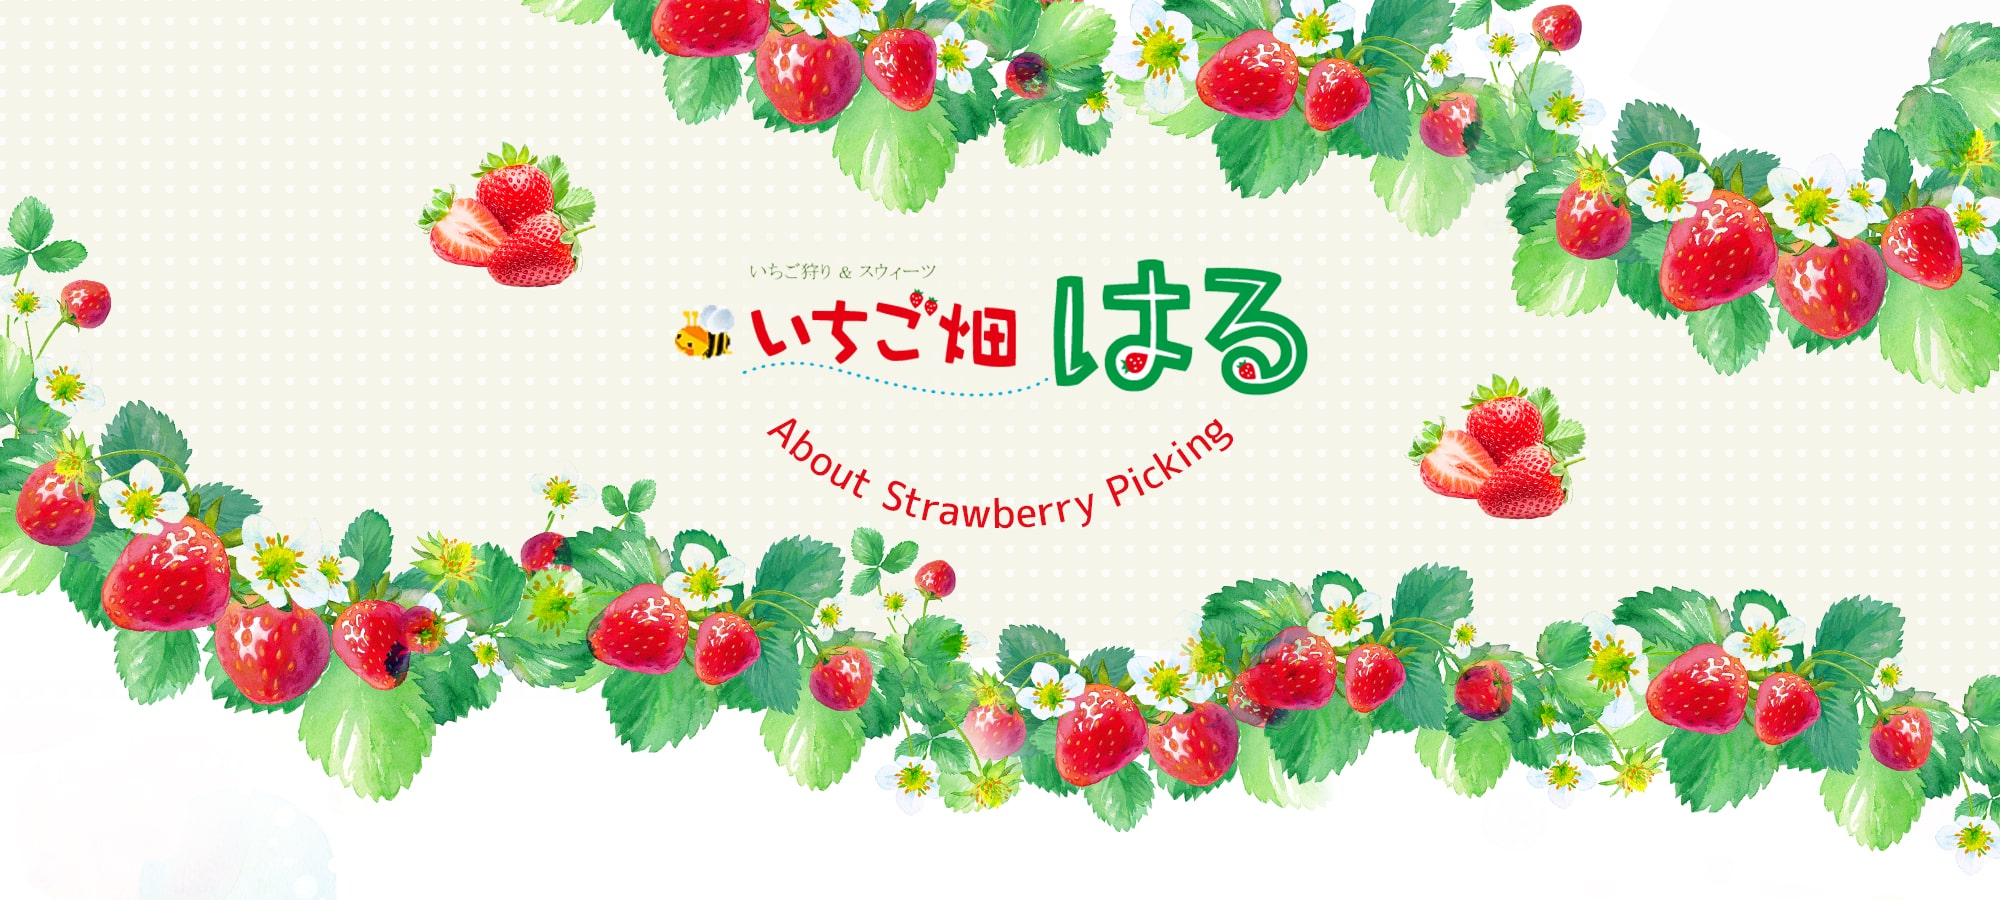 About Strawberry Picking